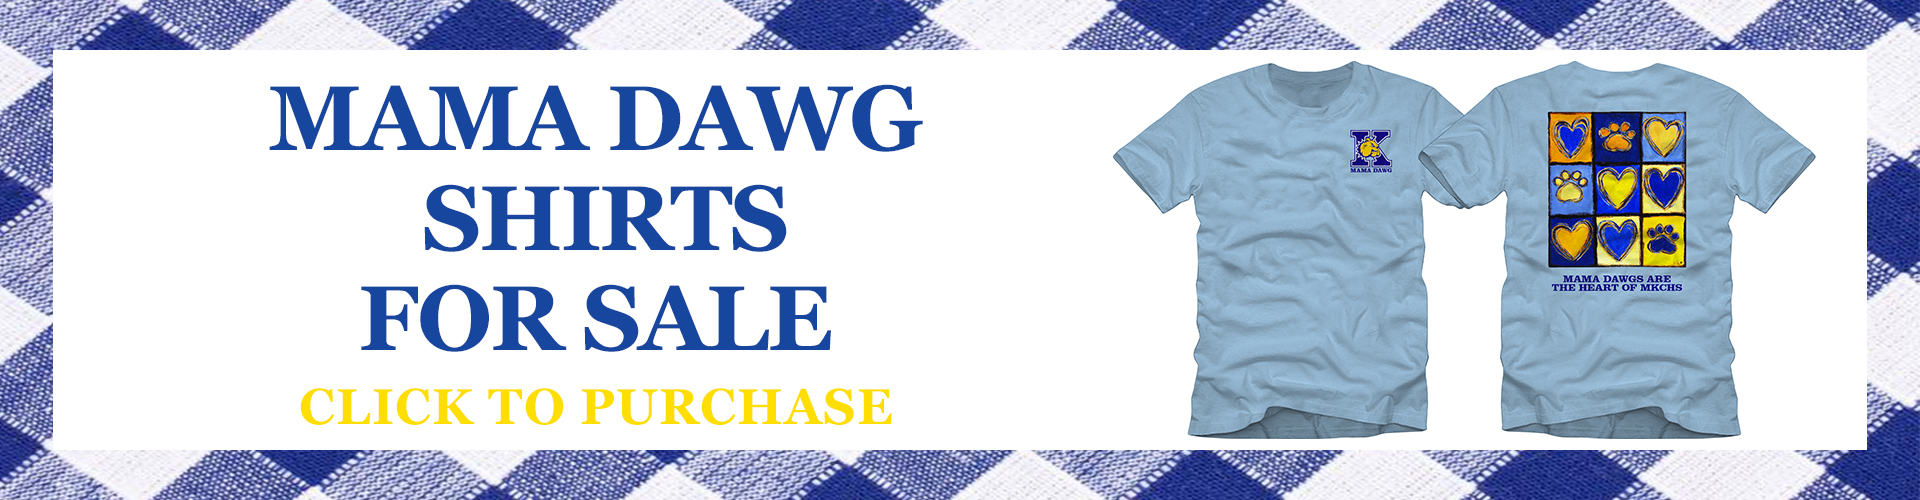 Tshirt Sale Website Banner